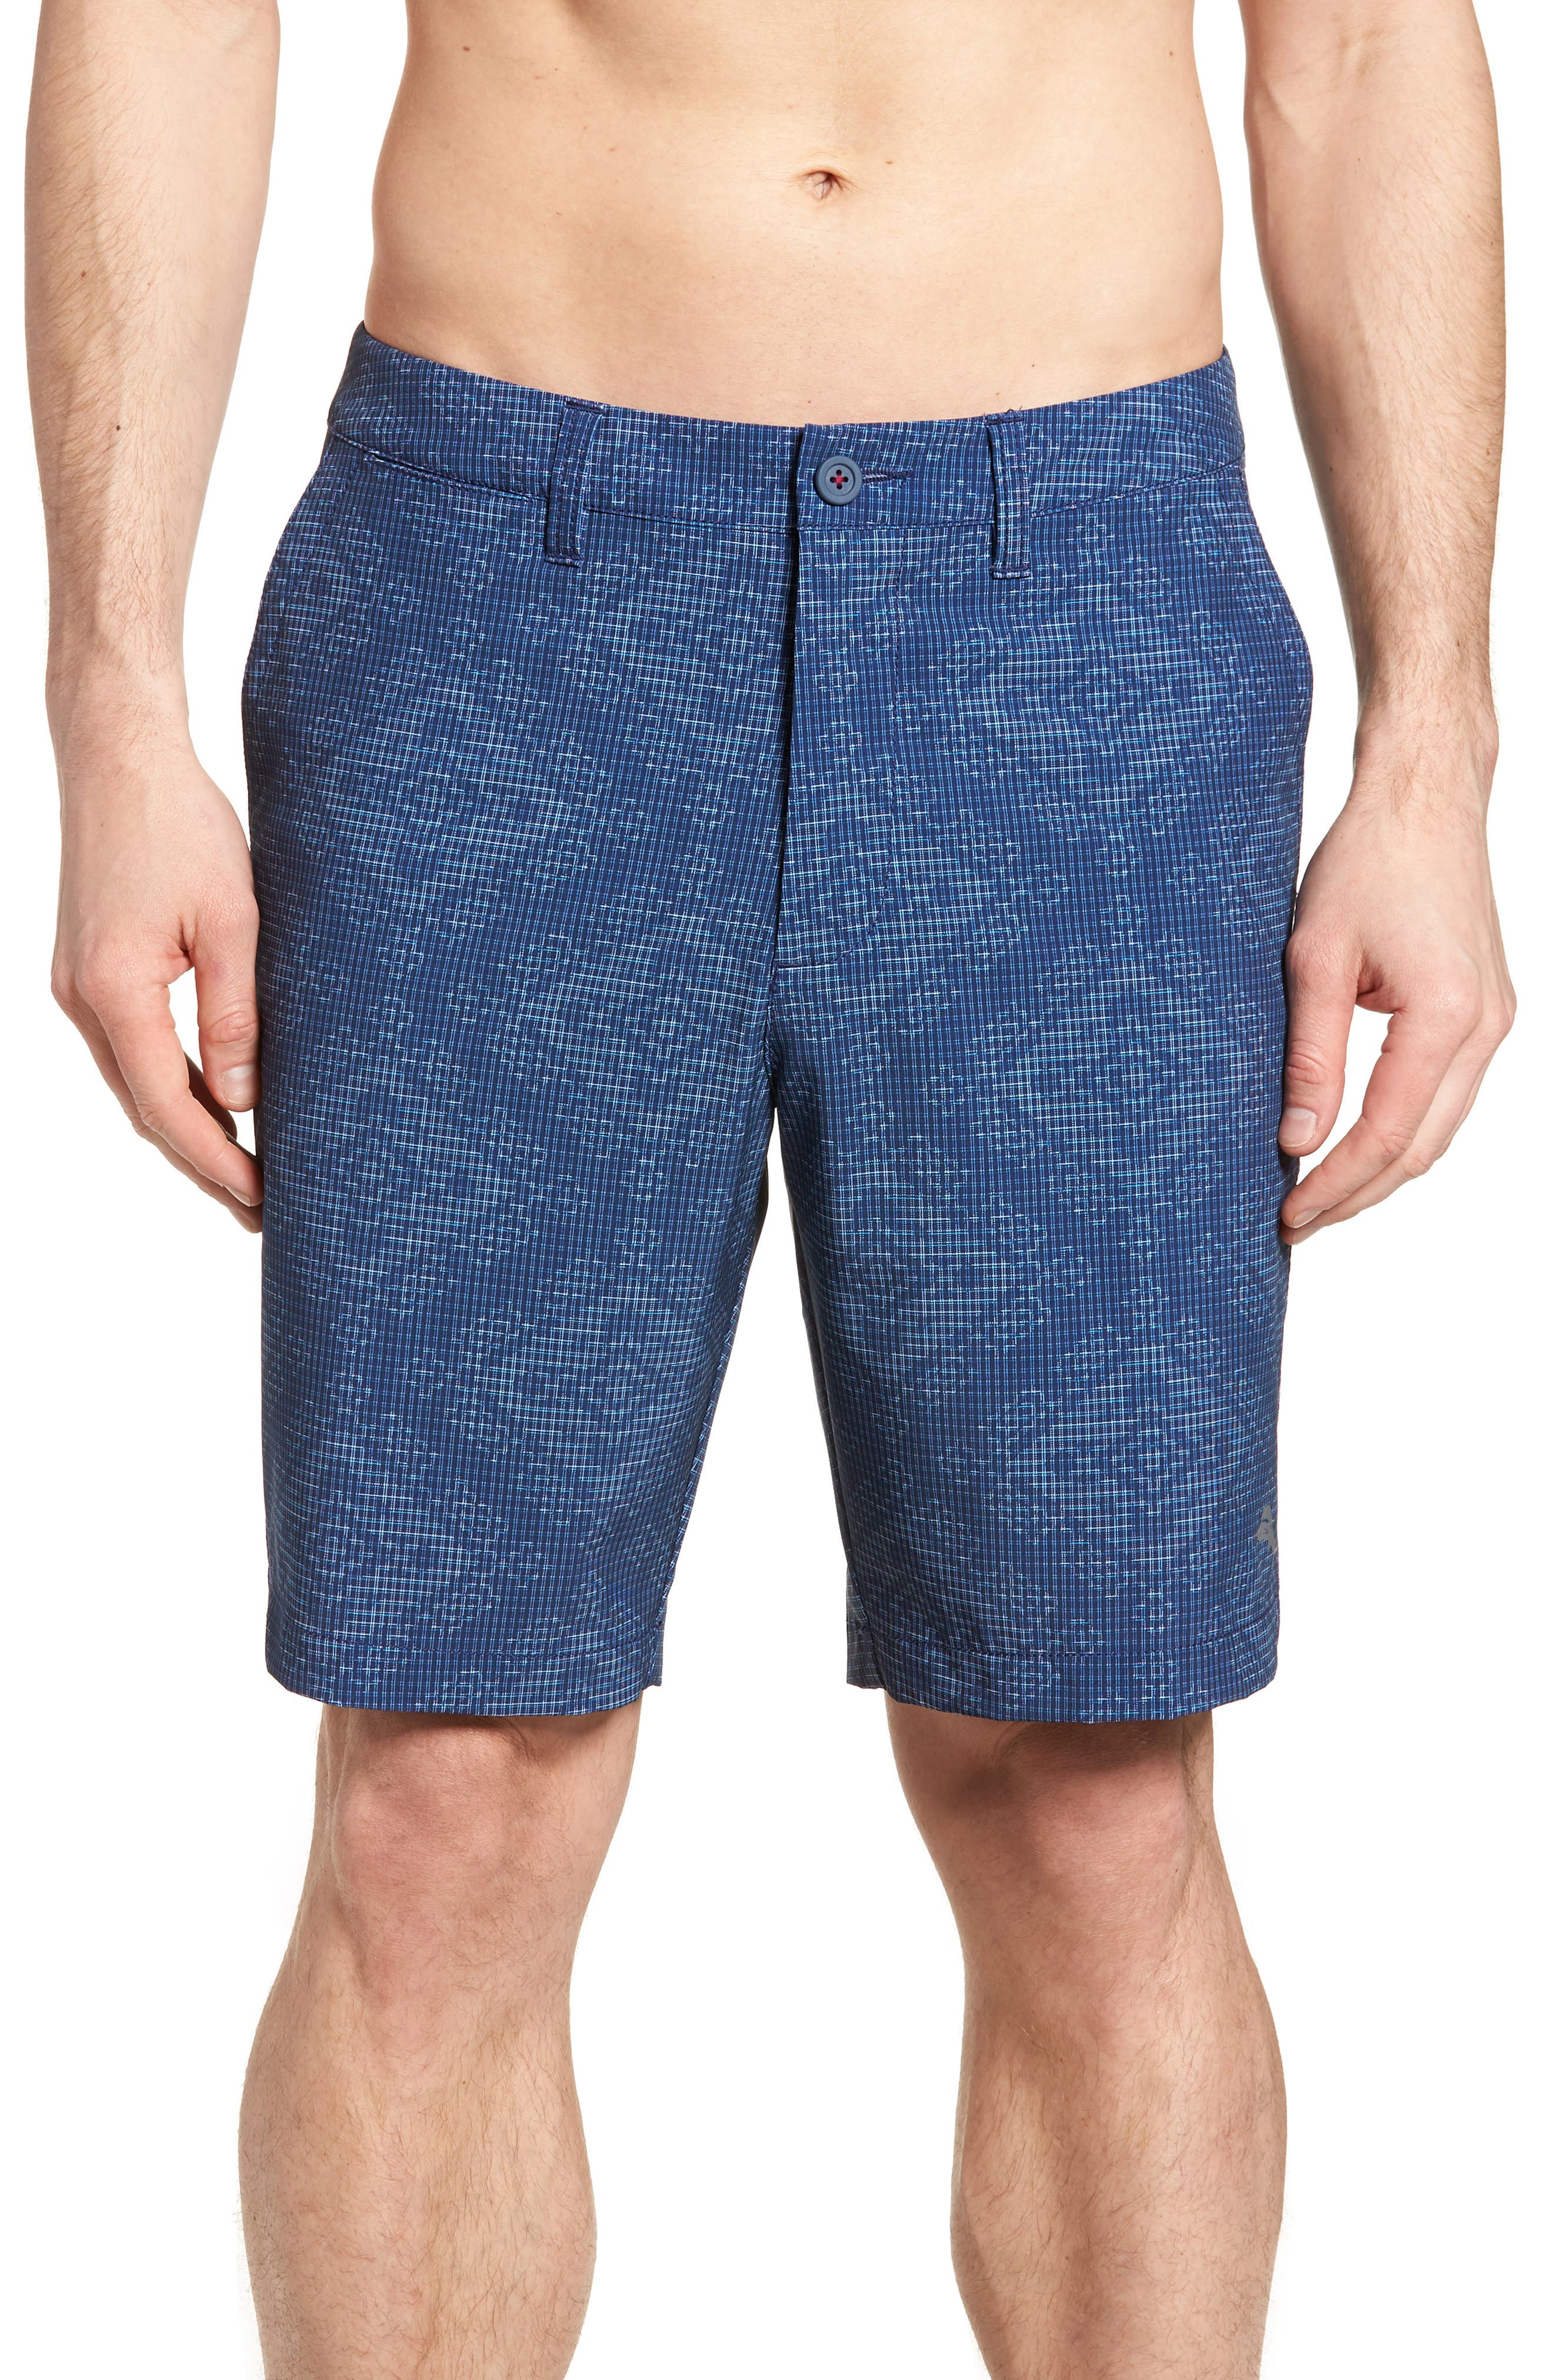 Bayman Geo De Mayo Hybrid Shorts,                             Main thumbnail 1, color,                             THRONE BLUE